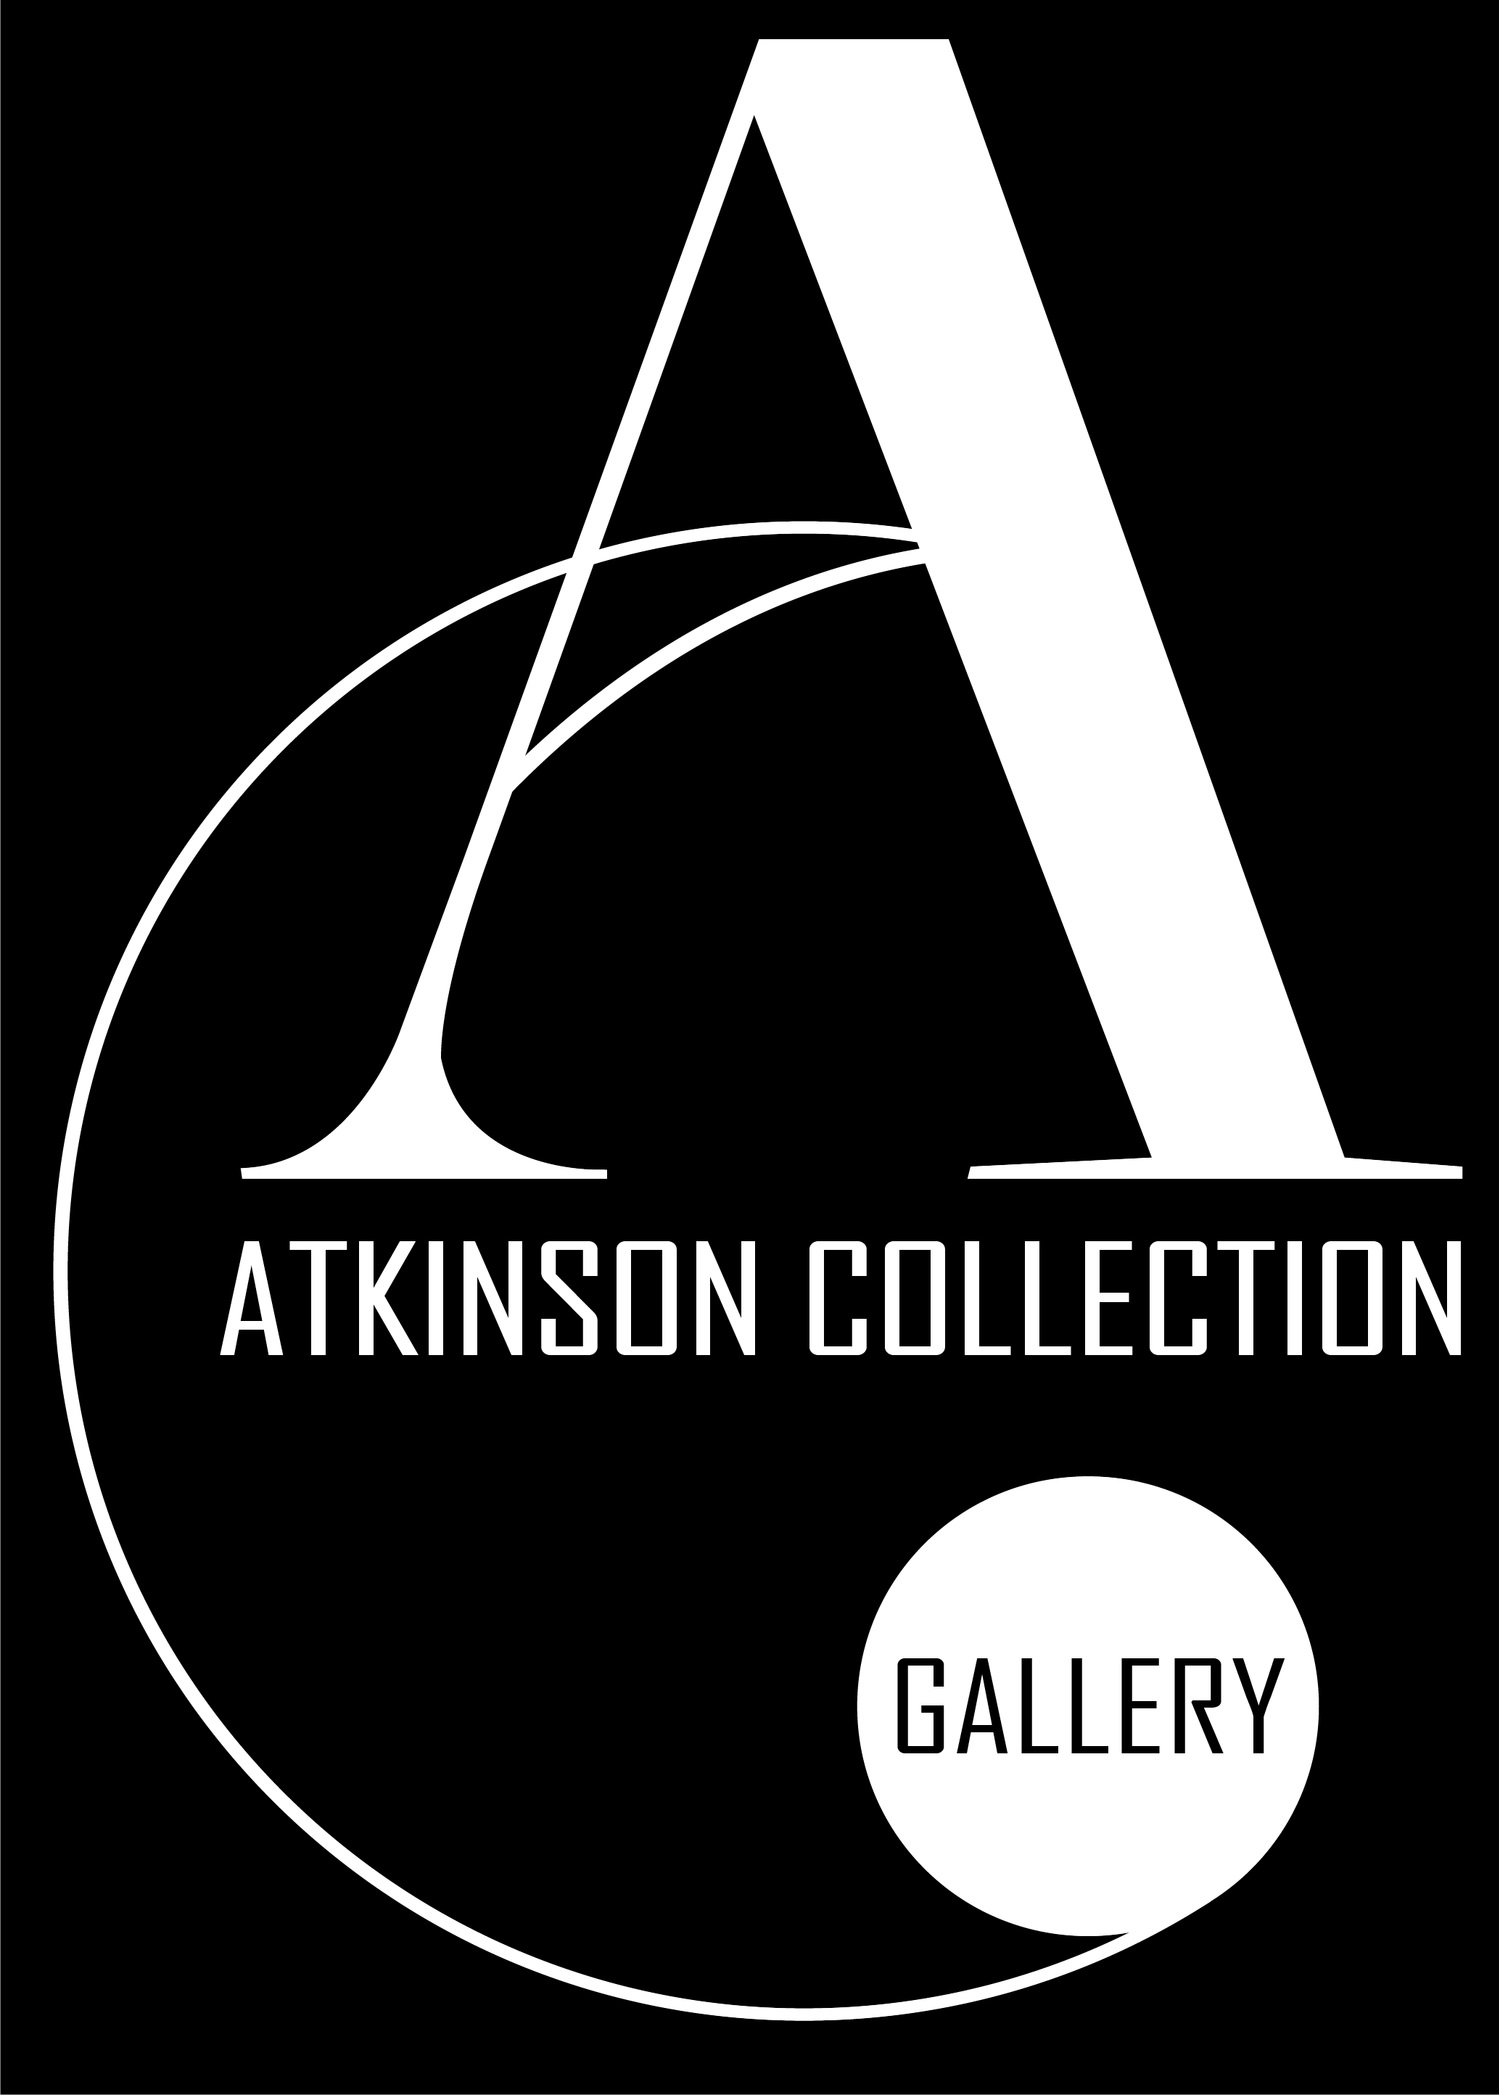 Atkinson Collection Gallery | Fine Artwork